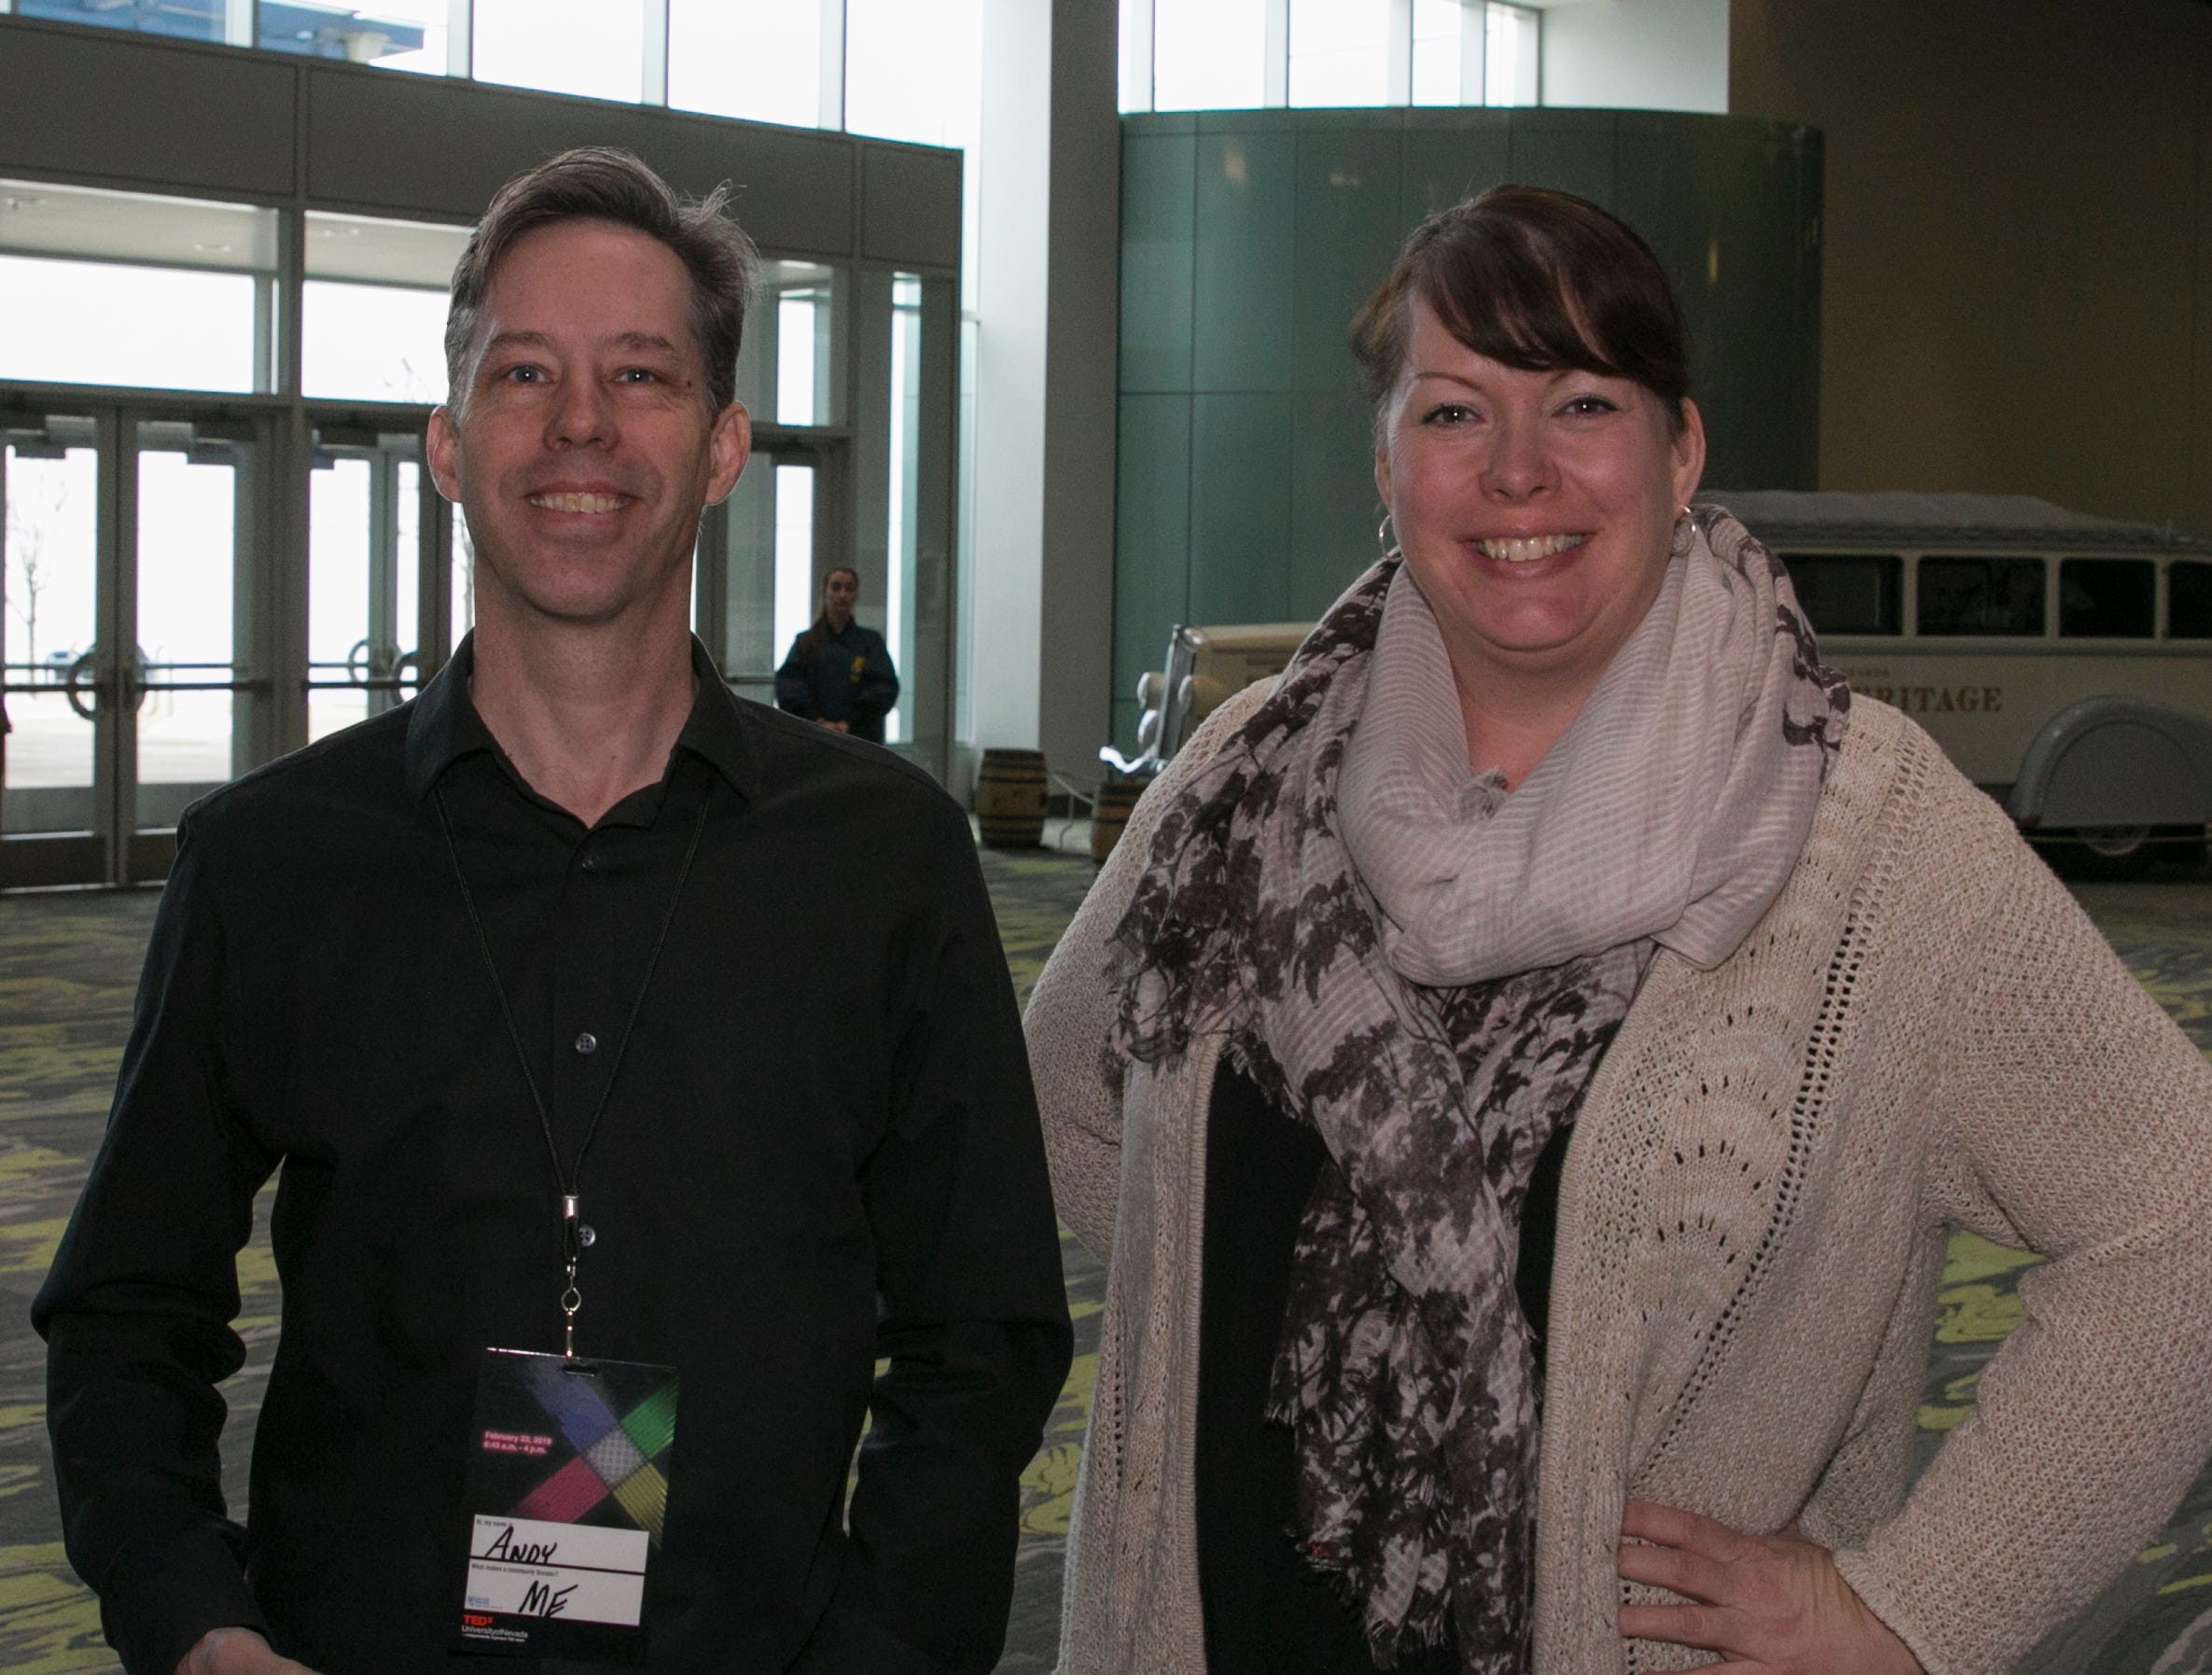 Andy Matthews and Kimberly Franco during TEDx University of Nevada 2019 at the Reno-Sparks Convention Center on Saturday, Feb. 23, 2019.